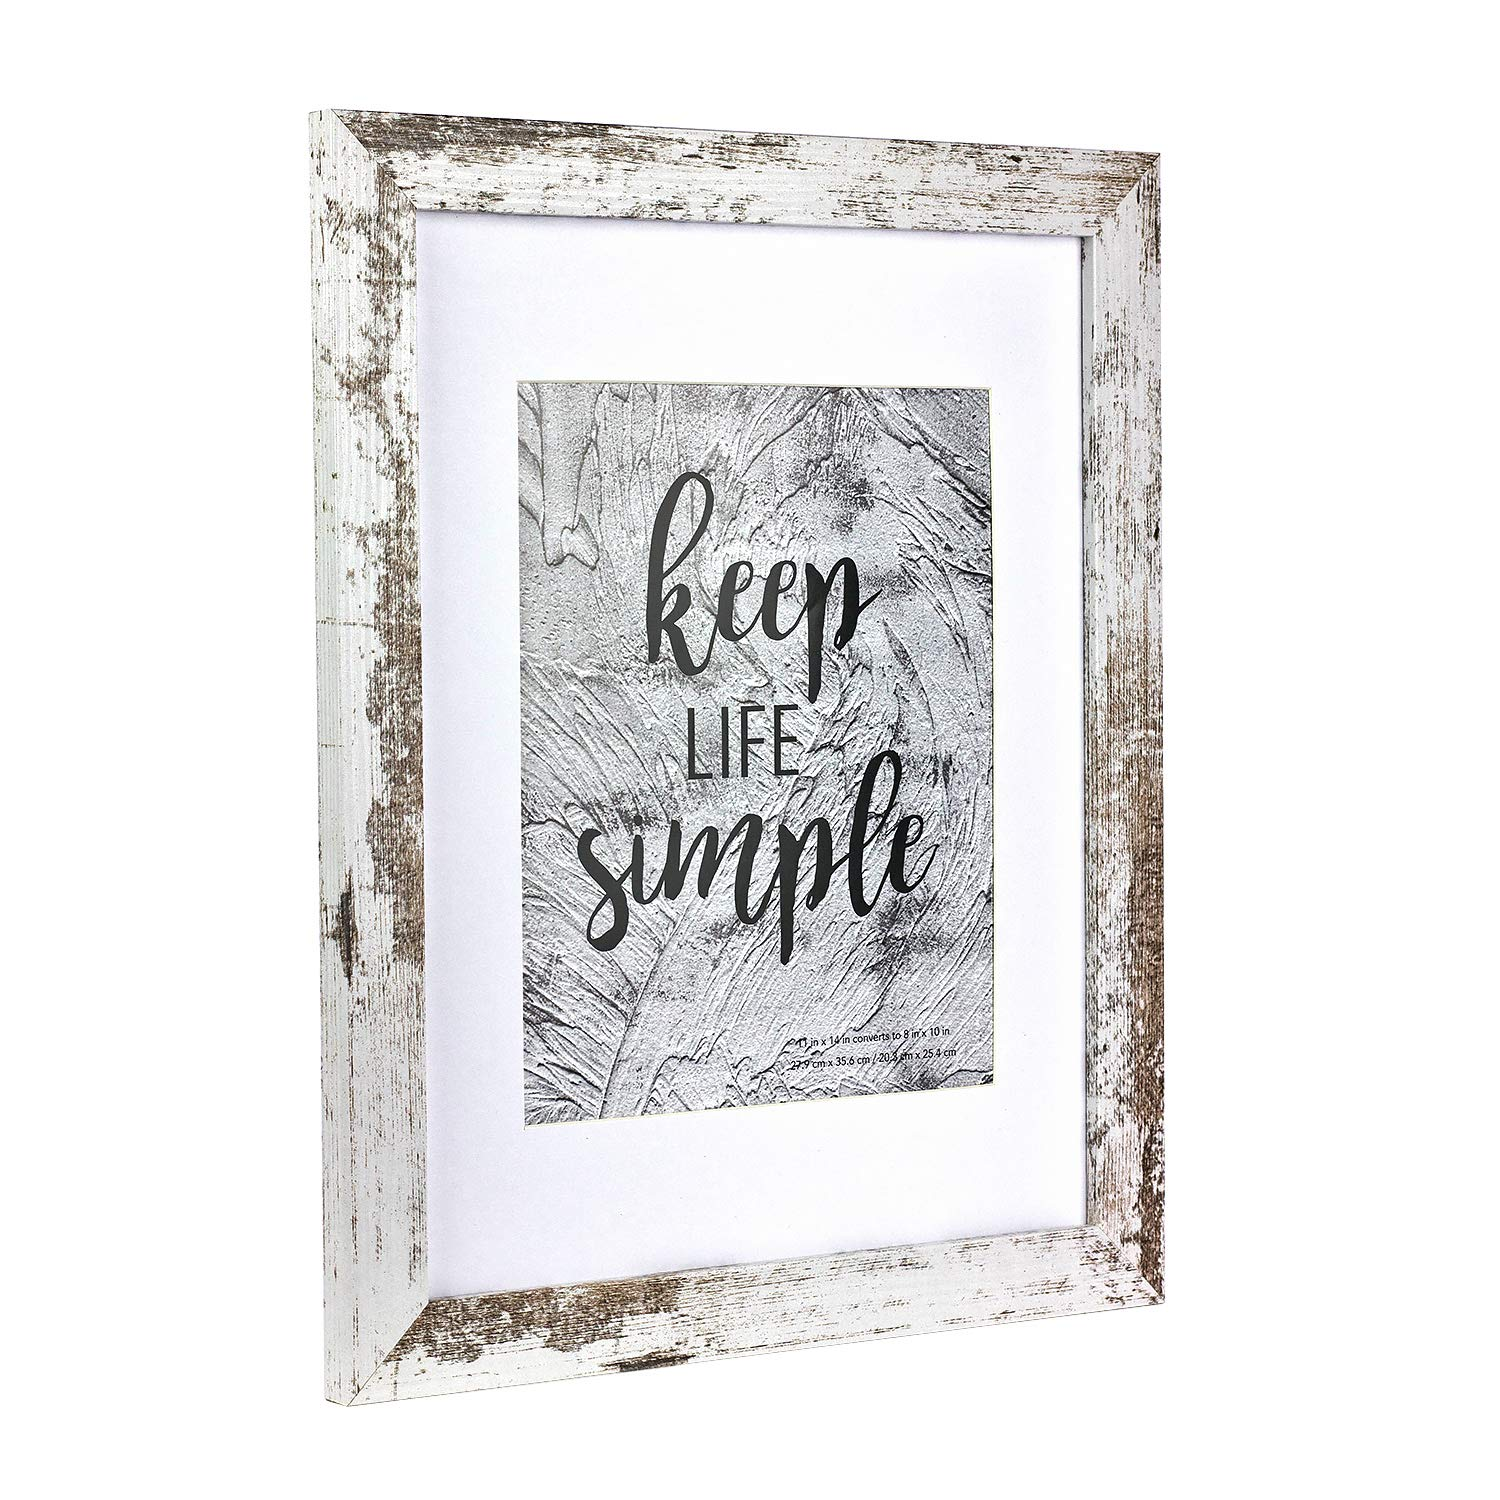 Home&Me 11x14 White Picture Frame - Made to Display Pictures 8x10 with Mat or 11x14 Without Mat - Wide Molding - Wall Mounting Material Included ... by Home&Me